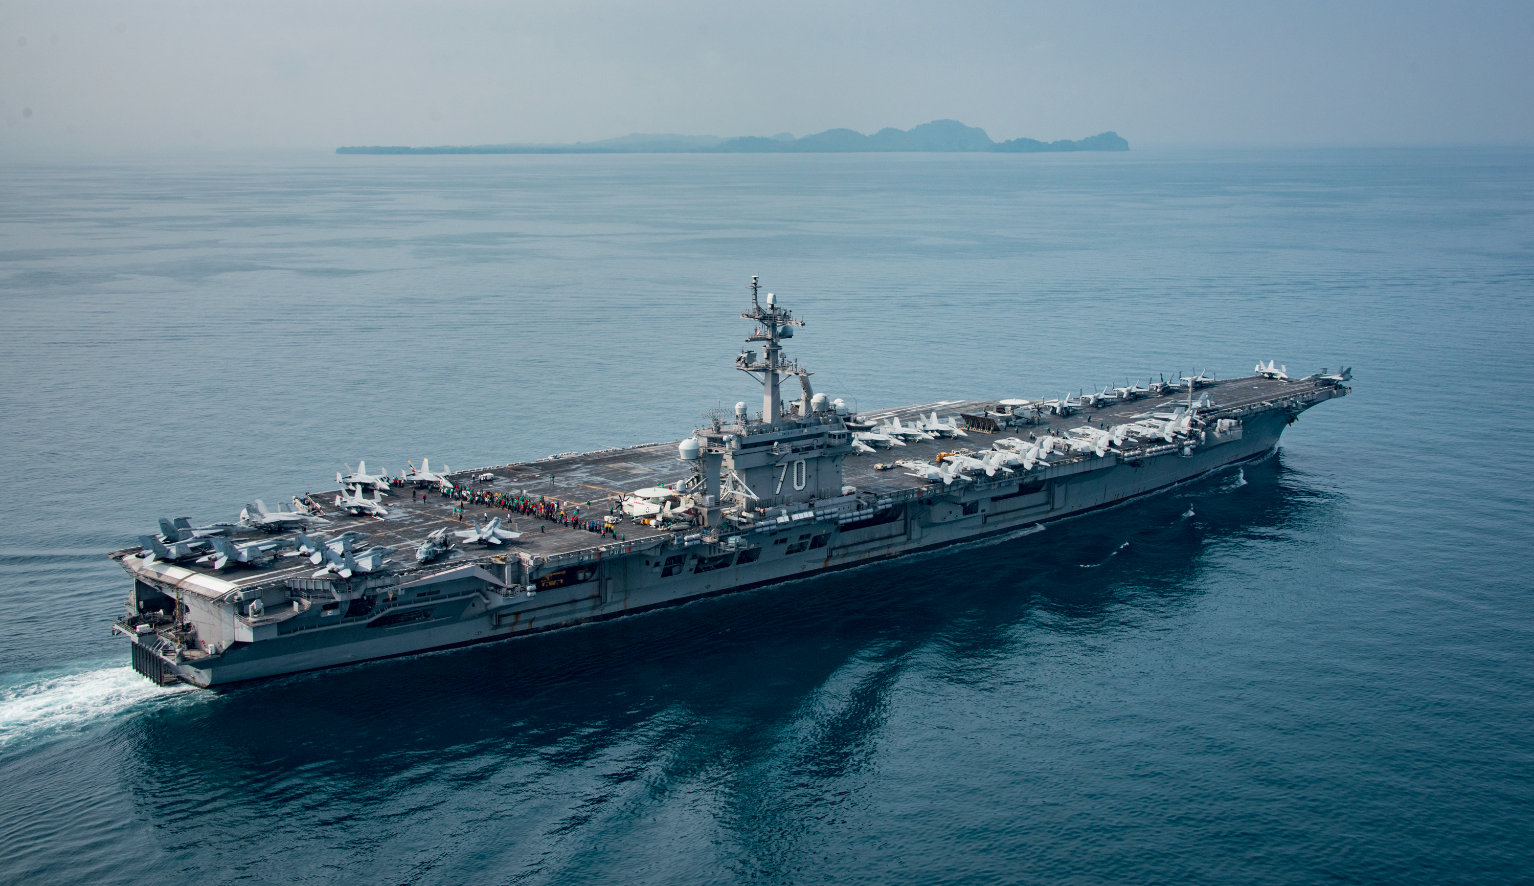 Photograph of the Carl Vinson on April 15, 2017 published by the U.S. Navy, showing the aircraft carrier crossing the Sunda Strait, sailing in the opposite ...